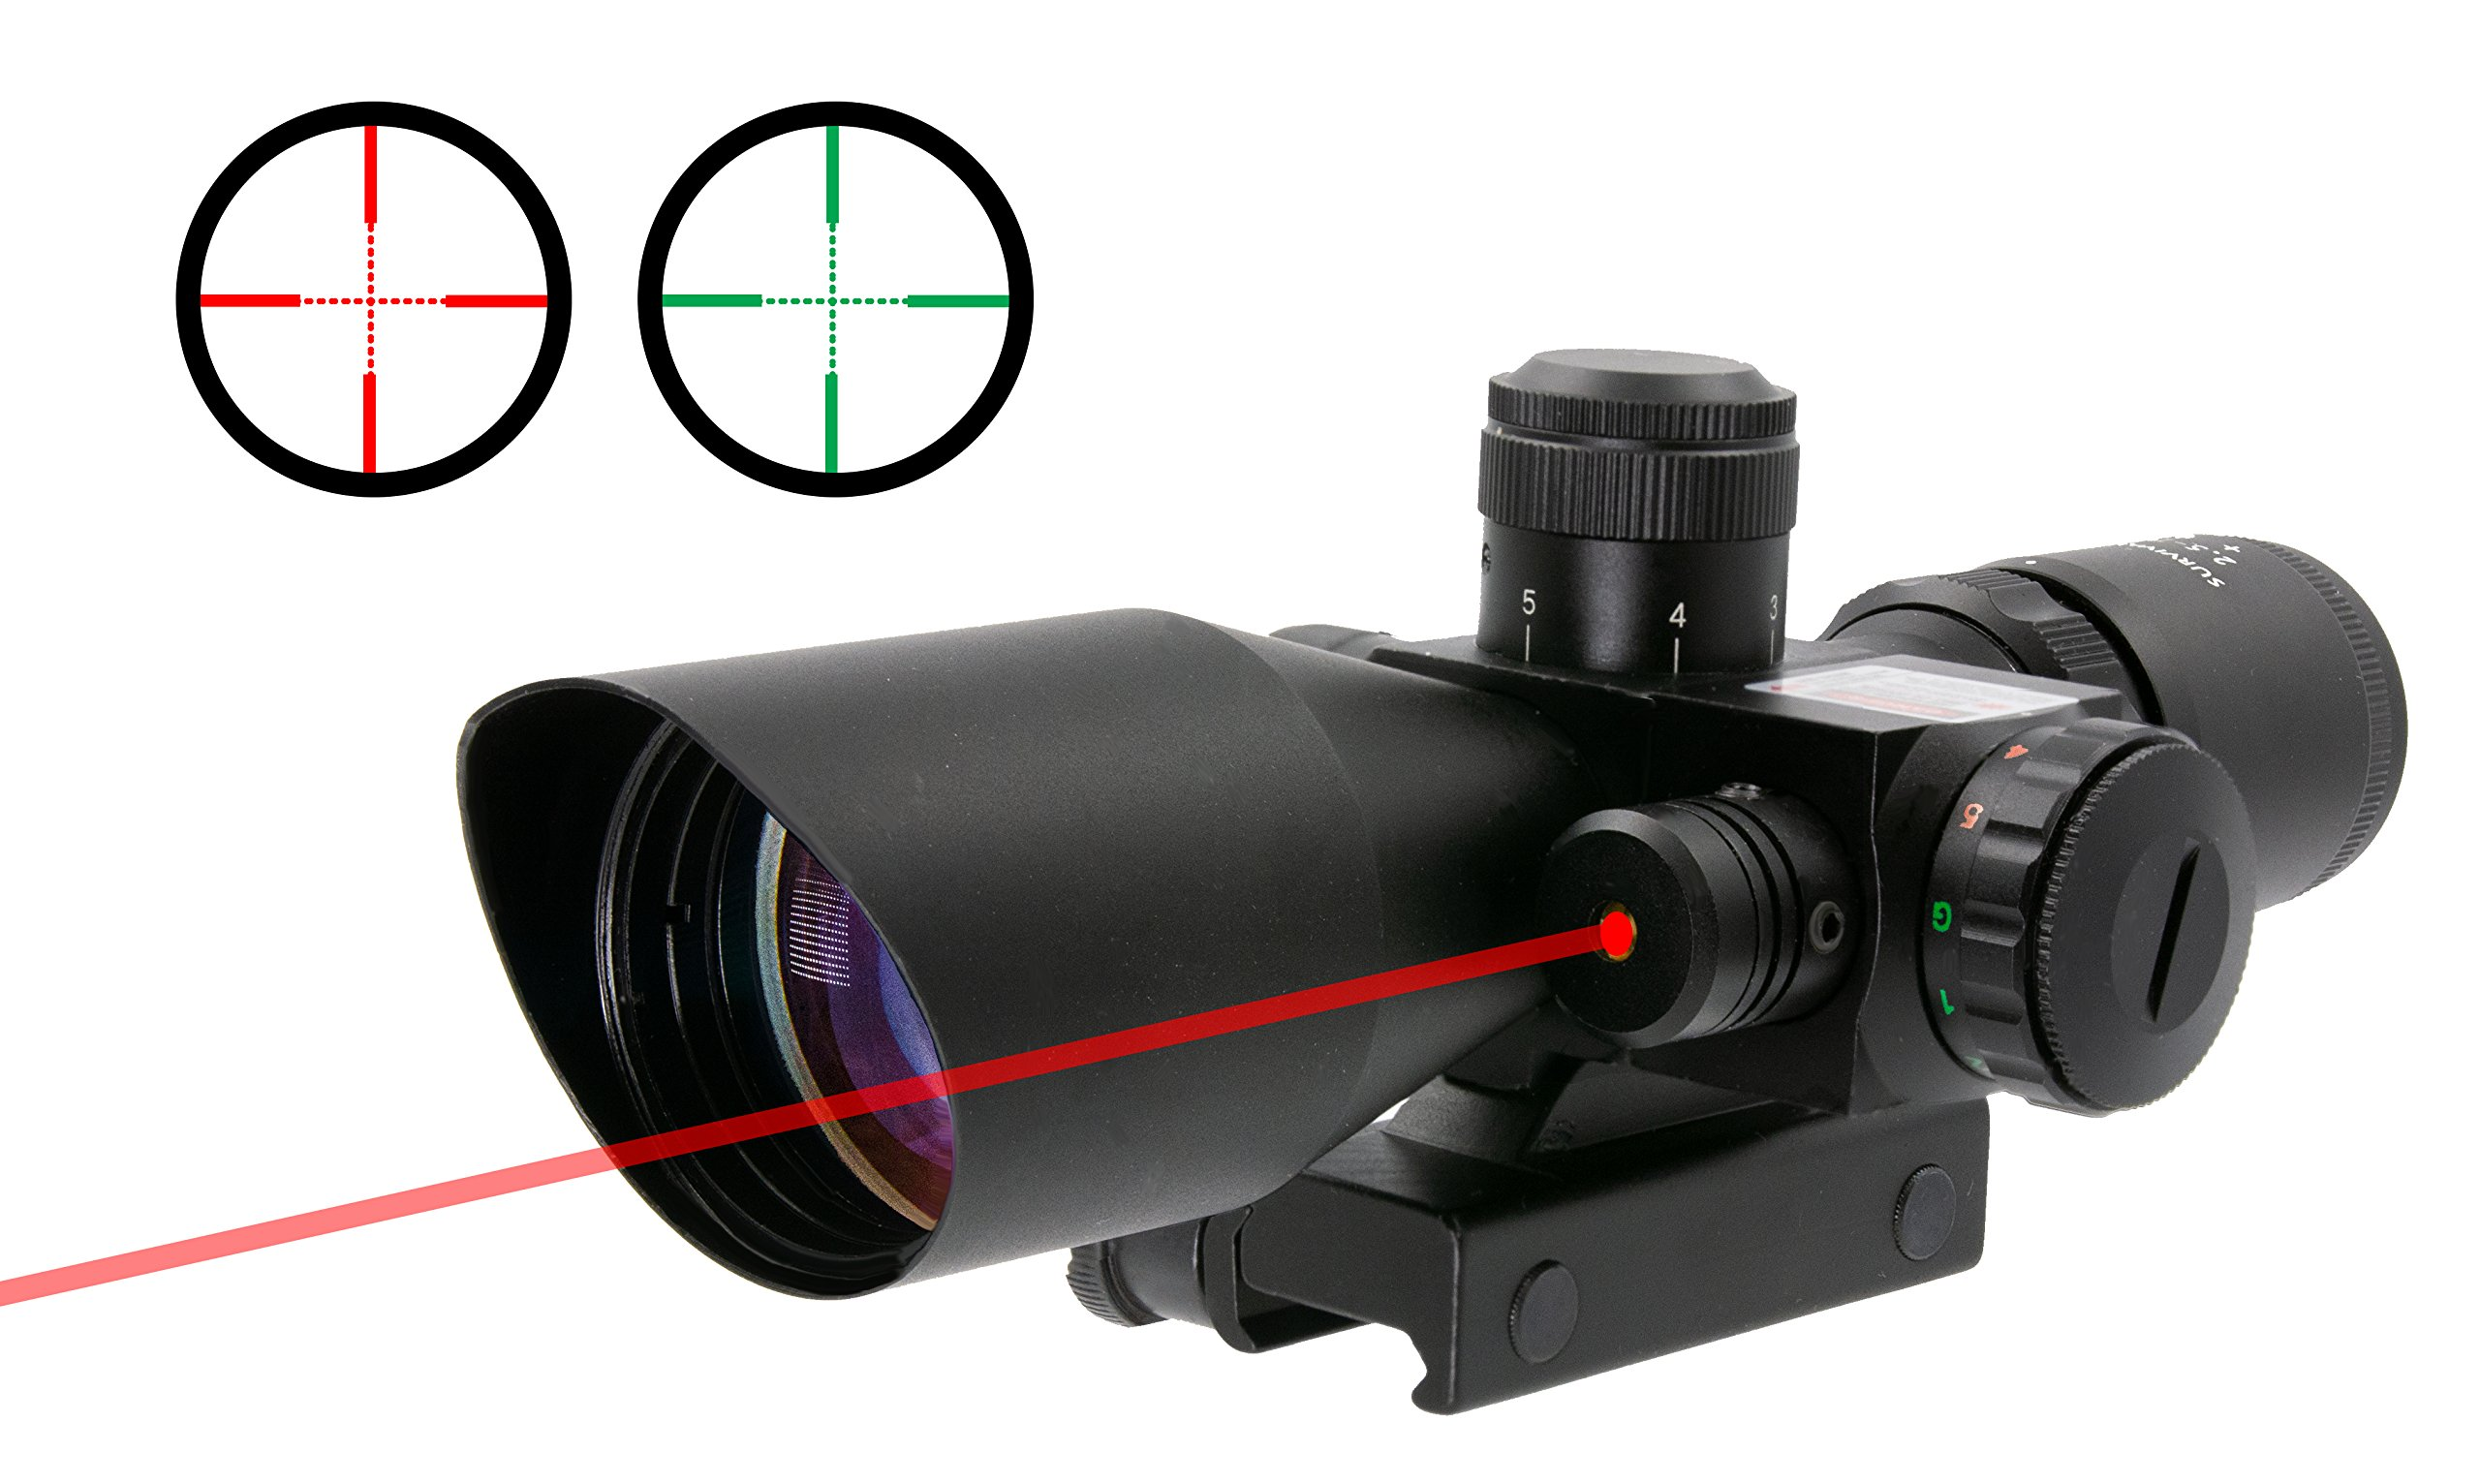 Survival Land 2.5-10x40 Rifle Scope - Illuminated Red & Green Mil-dot Reticle - Perfect as a Hunting Scope, Tactical Scope, Paintball Scope, or Airsoft Scope - Comes with a Class 3 Red Laser. by Survival Land